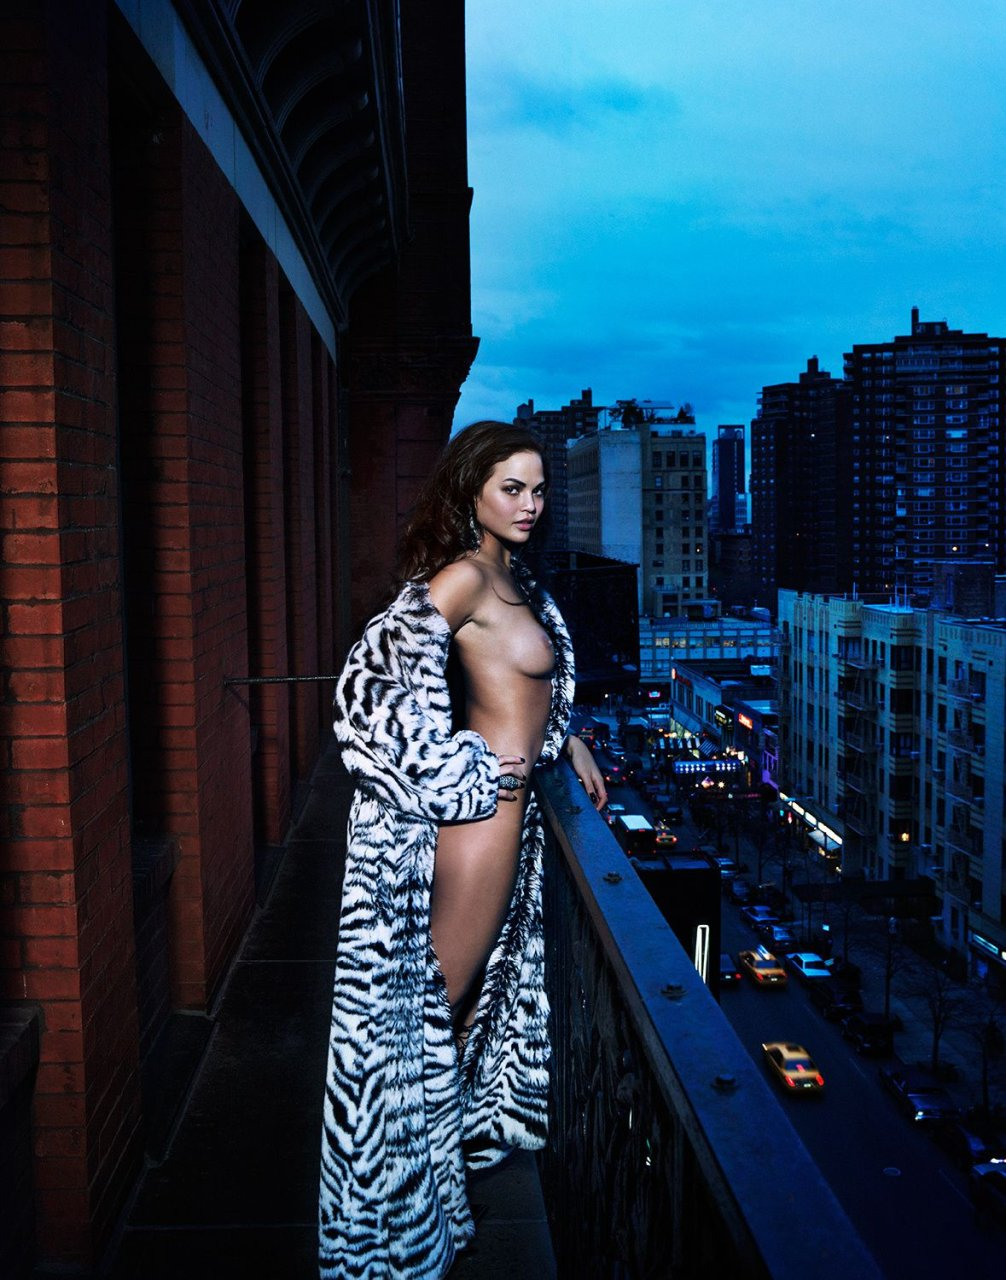 Sexy pictures of chrissy teigen